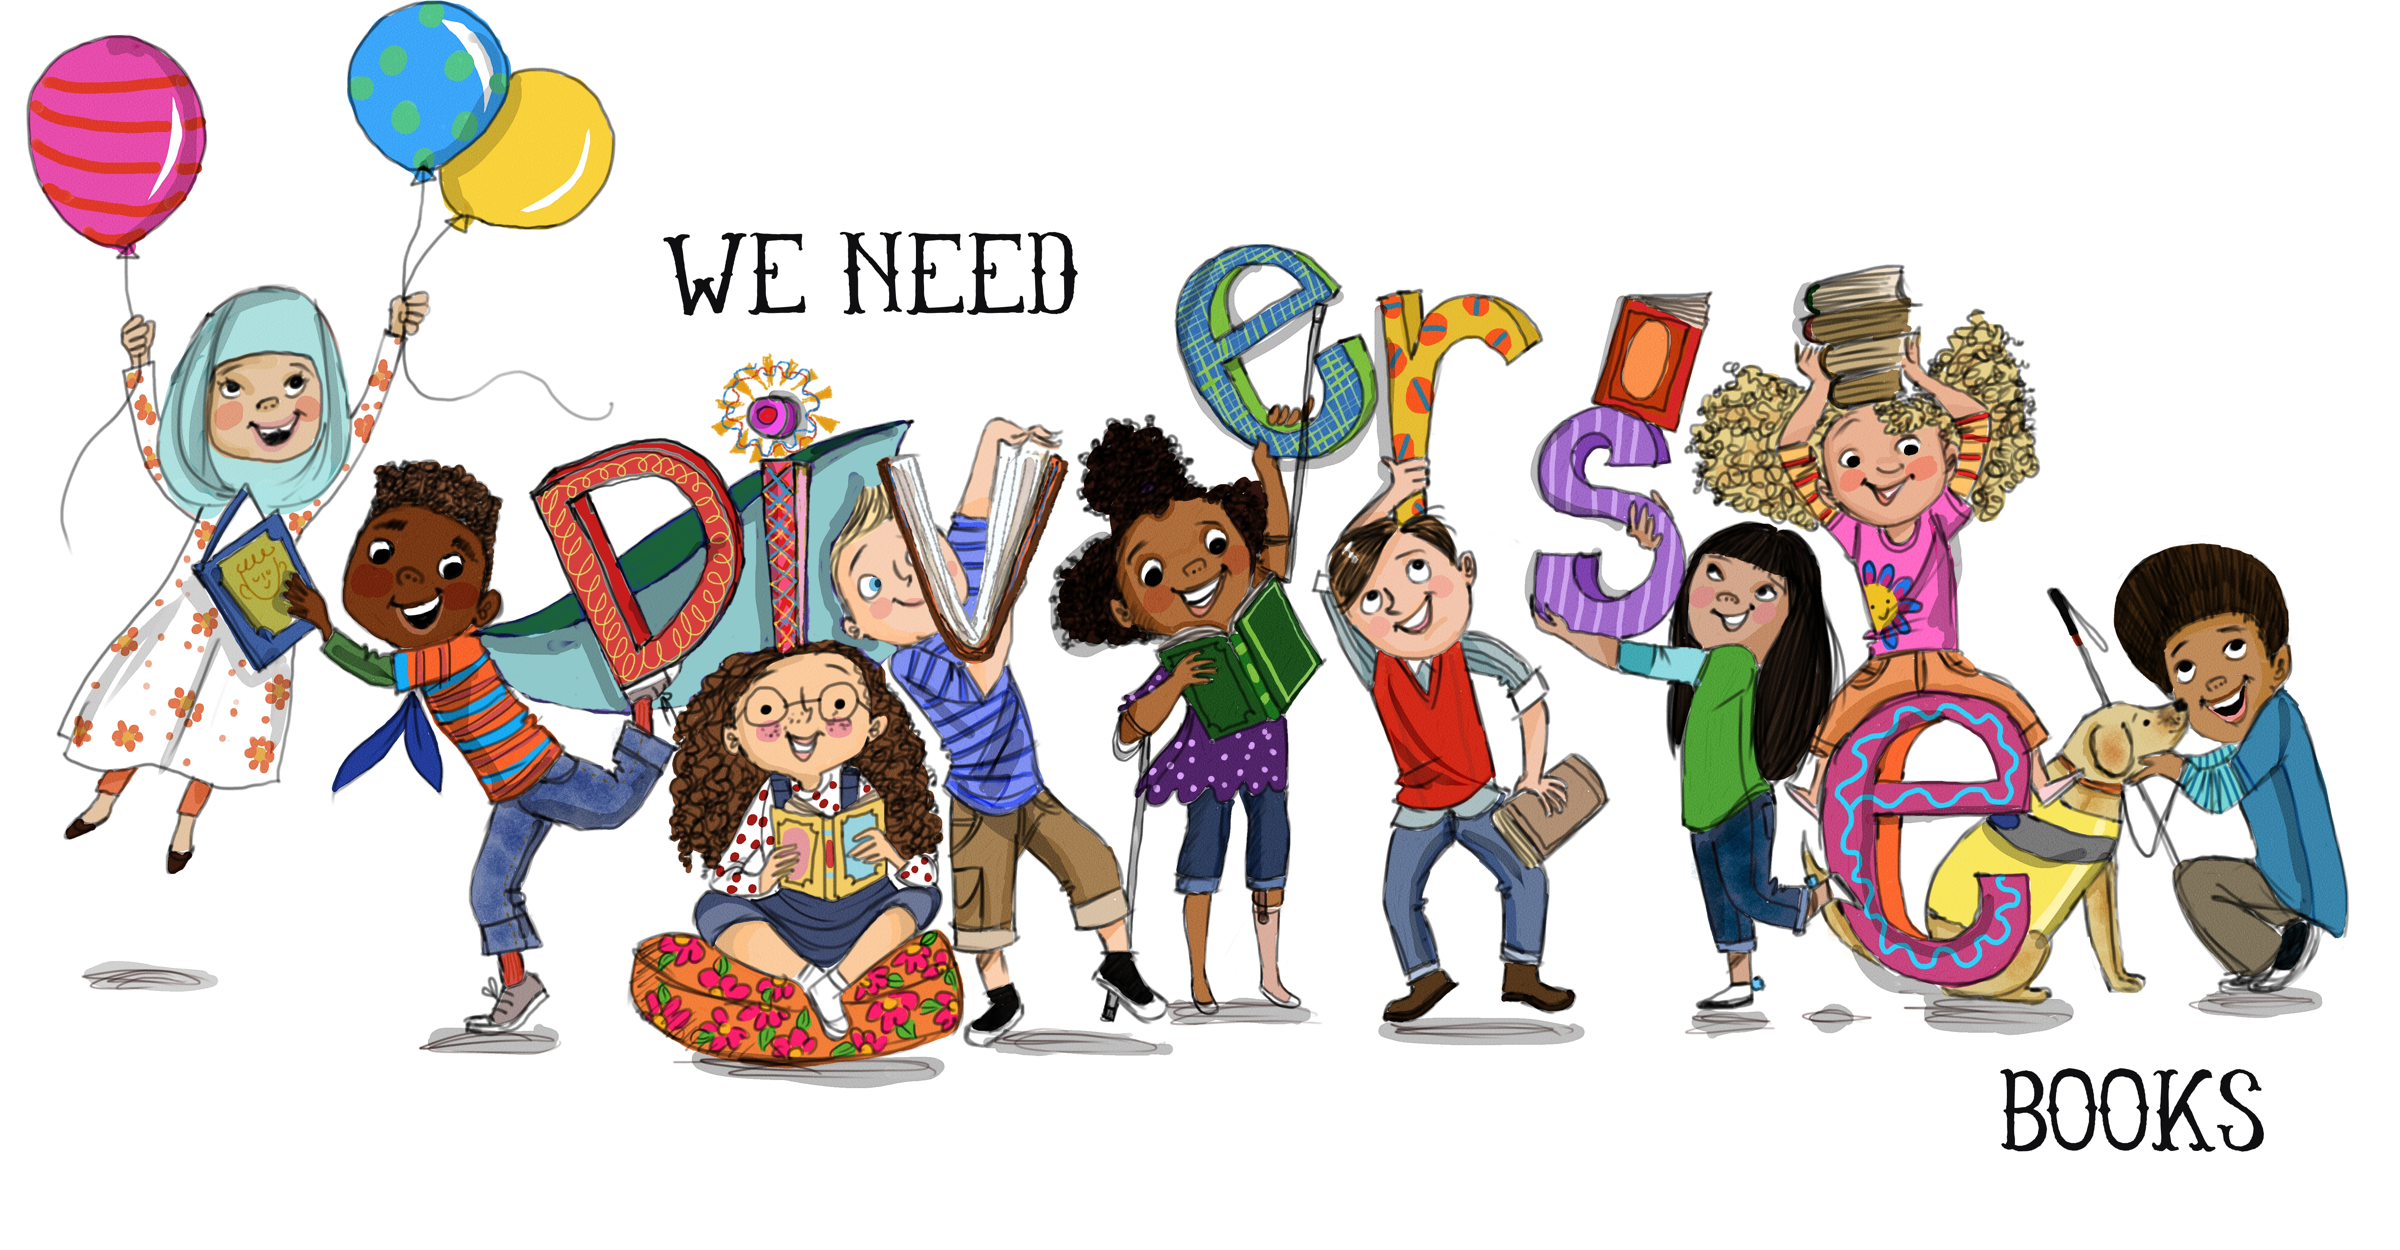 Illustration of several children of diverse ethnicities and abilities reading books and playing, with text We Need Diverse Books